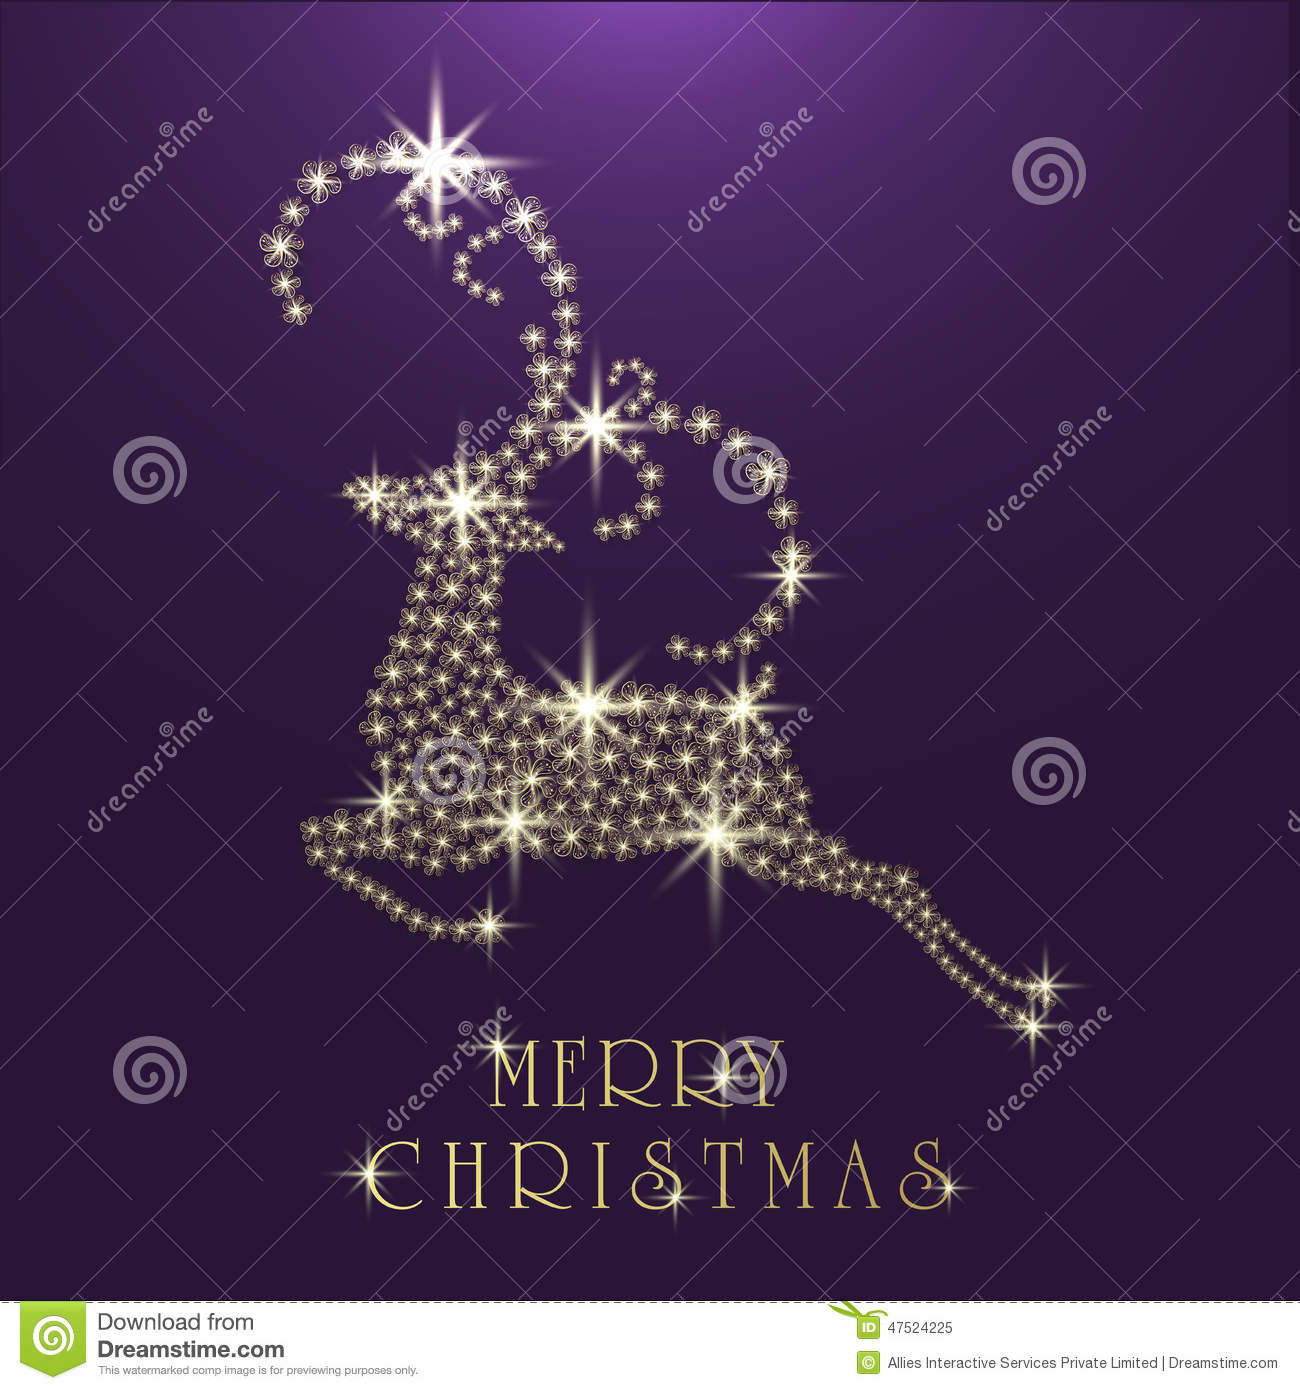 Merry christmas celebration greeting card with reindeer stock merry christmas celebration greeting card with reindeer kristyandbryce Image collections